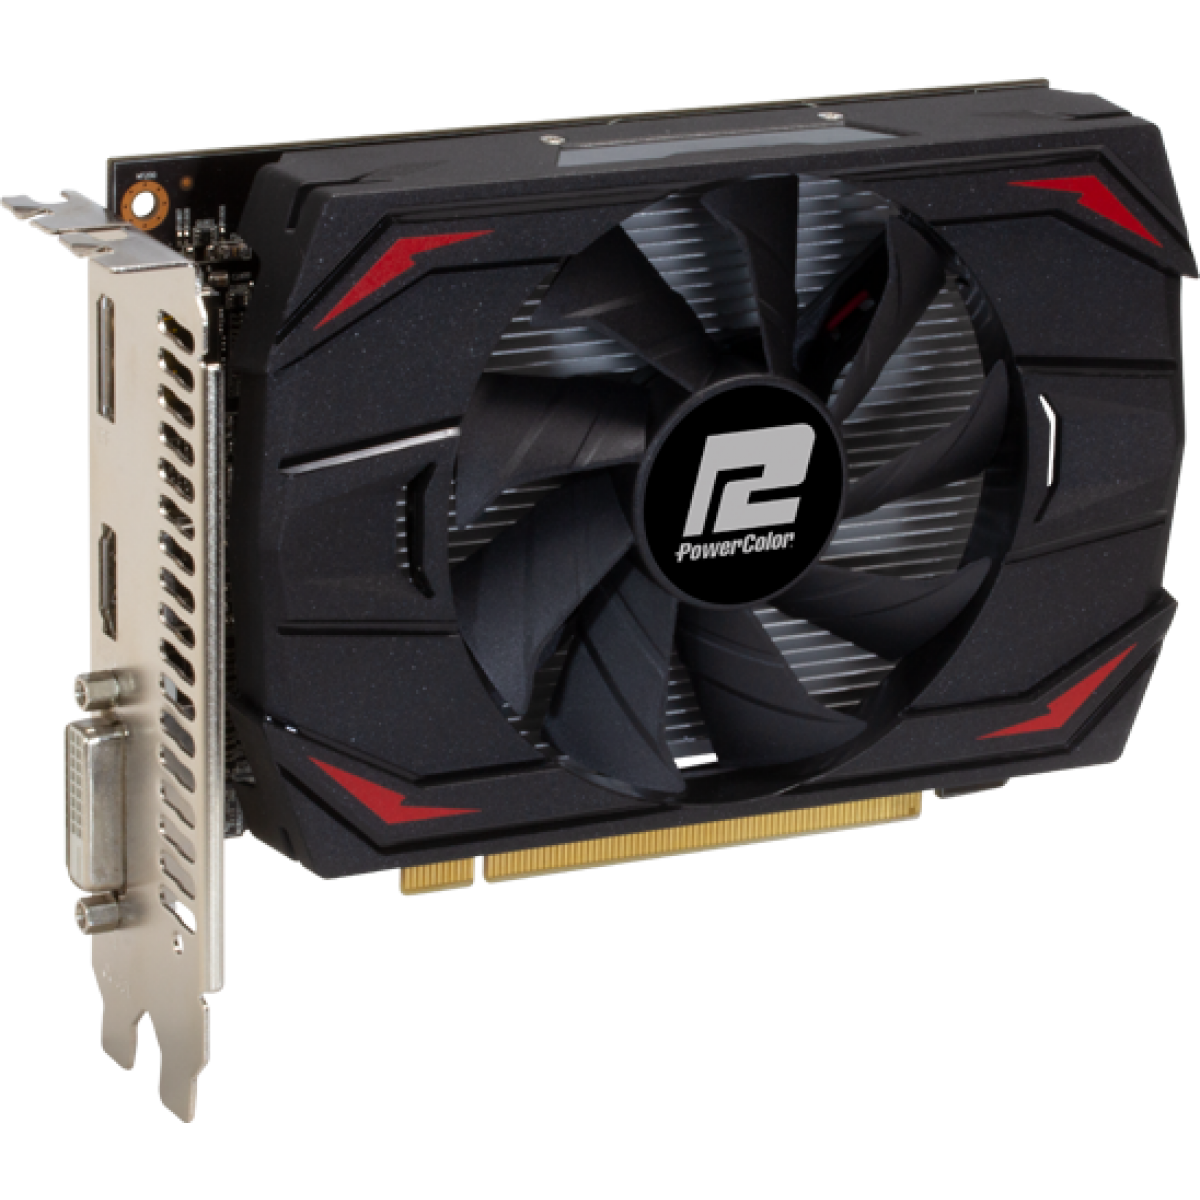 Placa de Vídeo PowerColor, Radeon, RX 550 Red Dragon, 2GB, GDDR5, 64Bit, AXRX 2GB64BD5-DH